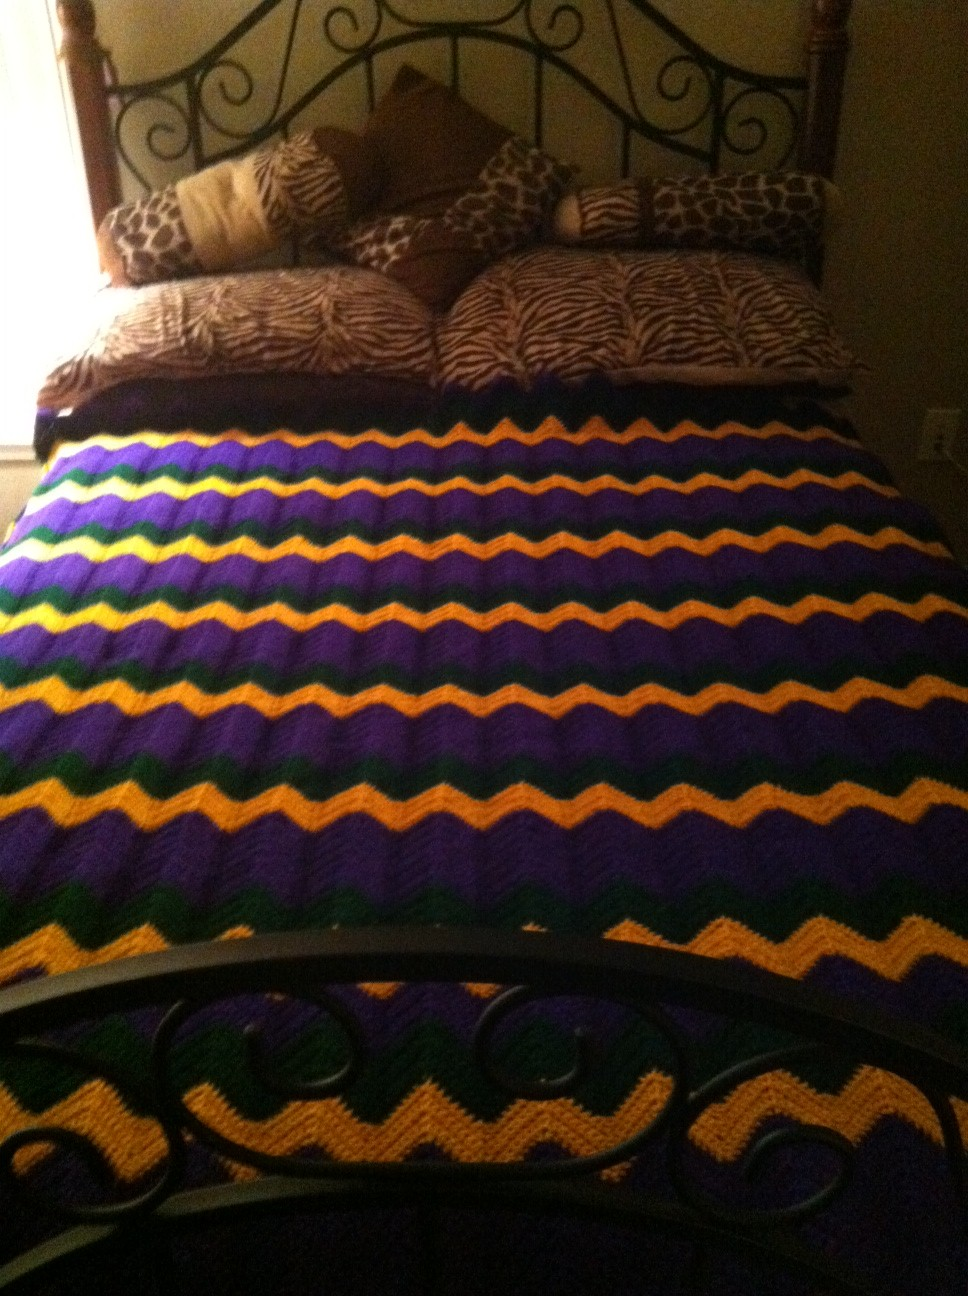 The Royal Full Size Crocheted Single Stitch Zigzag Blanket